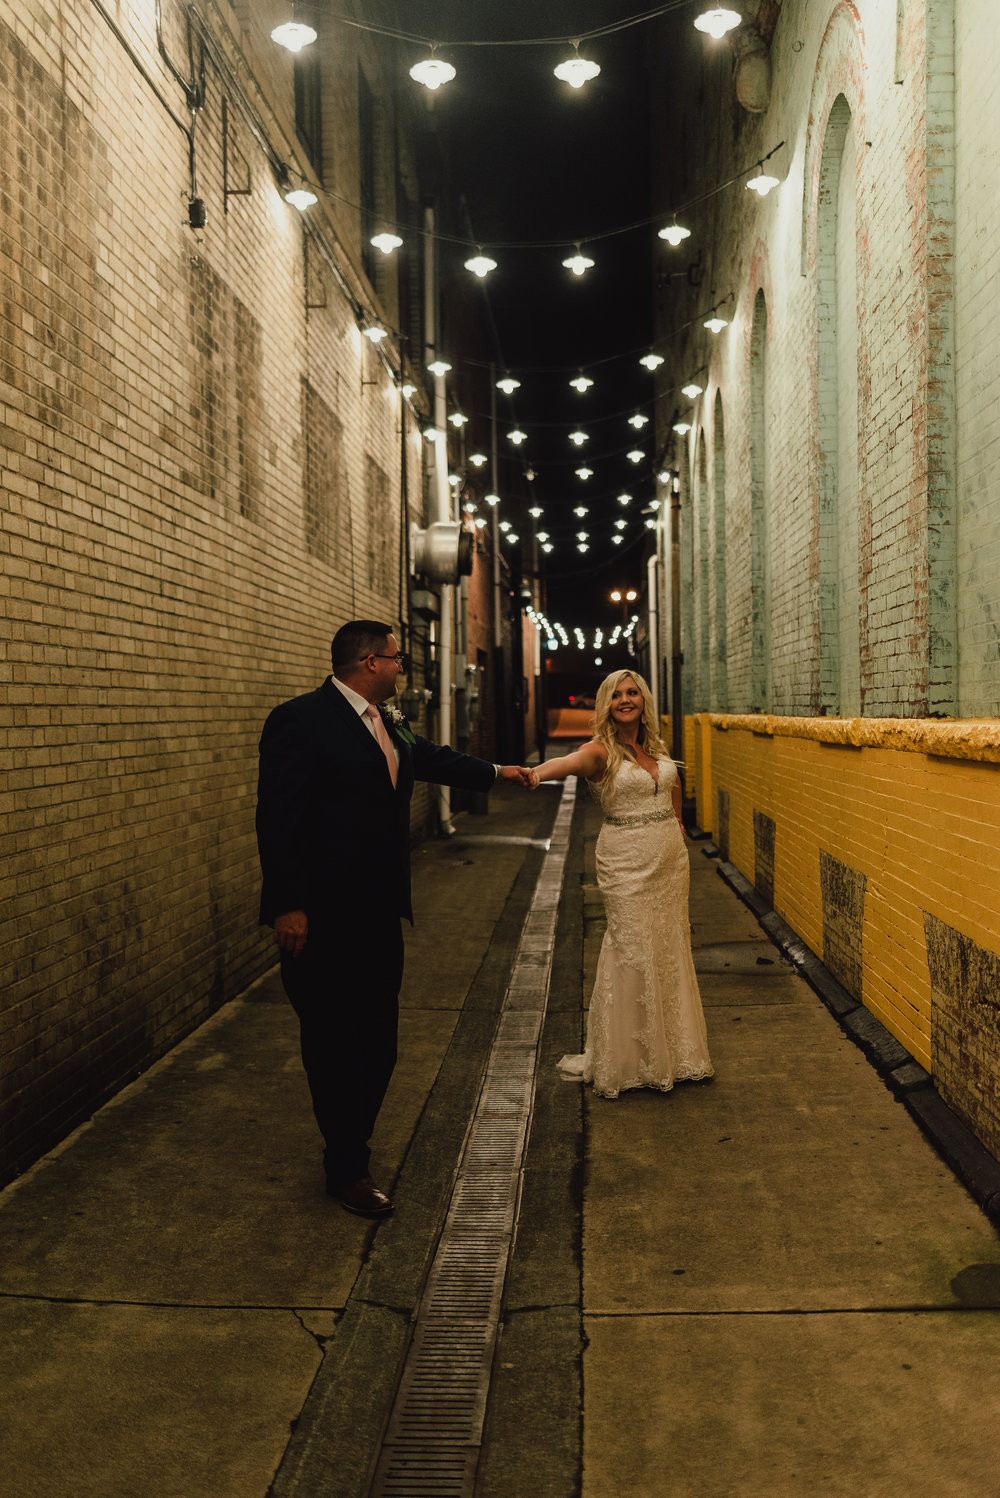 east-tn-wedding-photographer-tennessee-elopement-photographer-kingsport-tn-wedding-photographer (878 of 1001).jpg